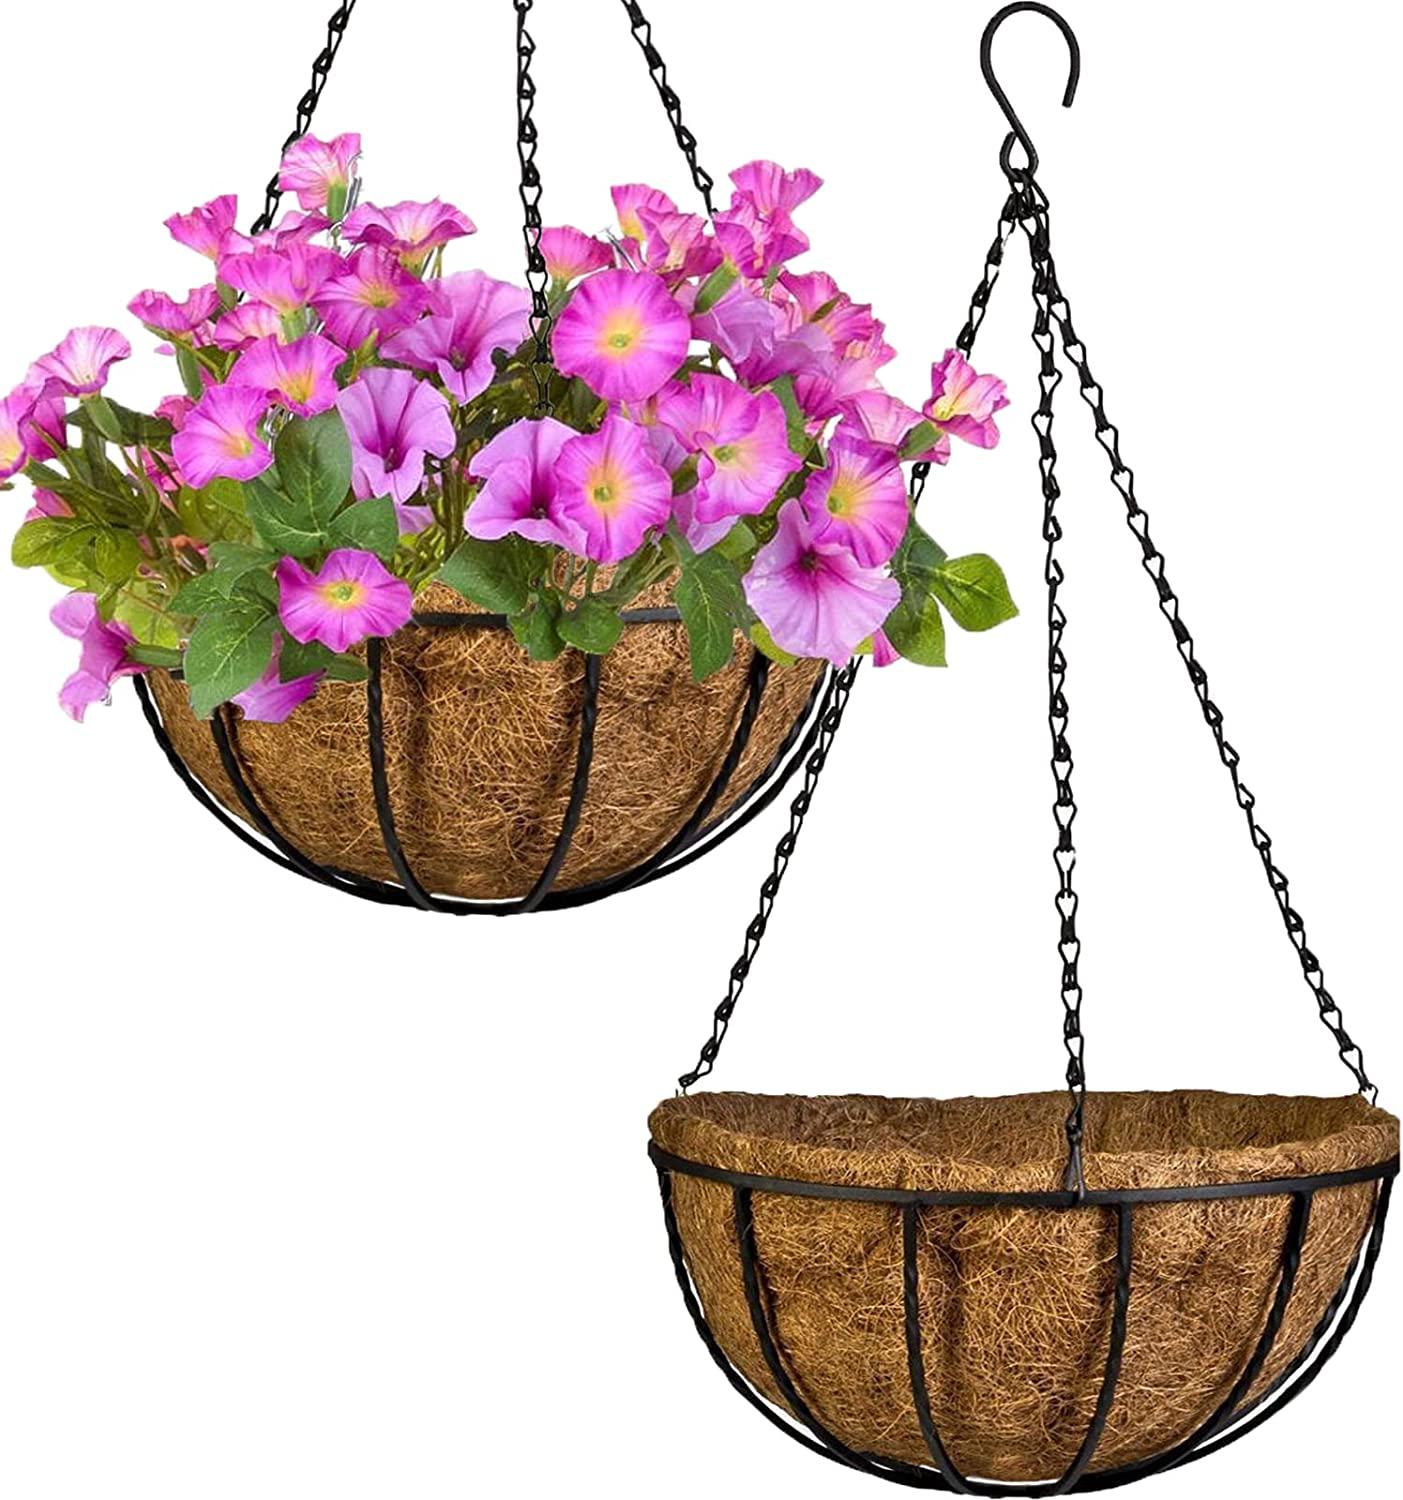 PACDONA 2 Pack Hanging Pots for Liner Discount is also underway Indefinitely Coco Coir with 12'' Plants